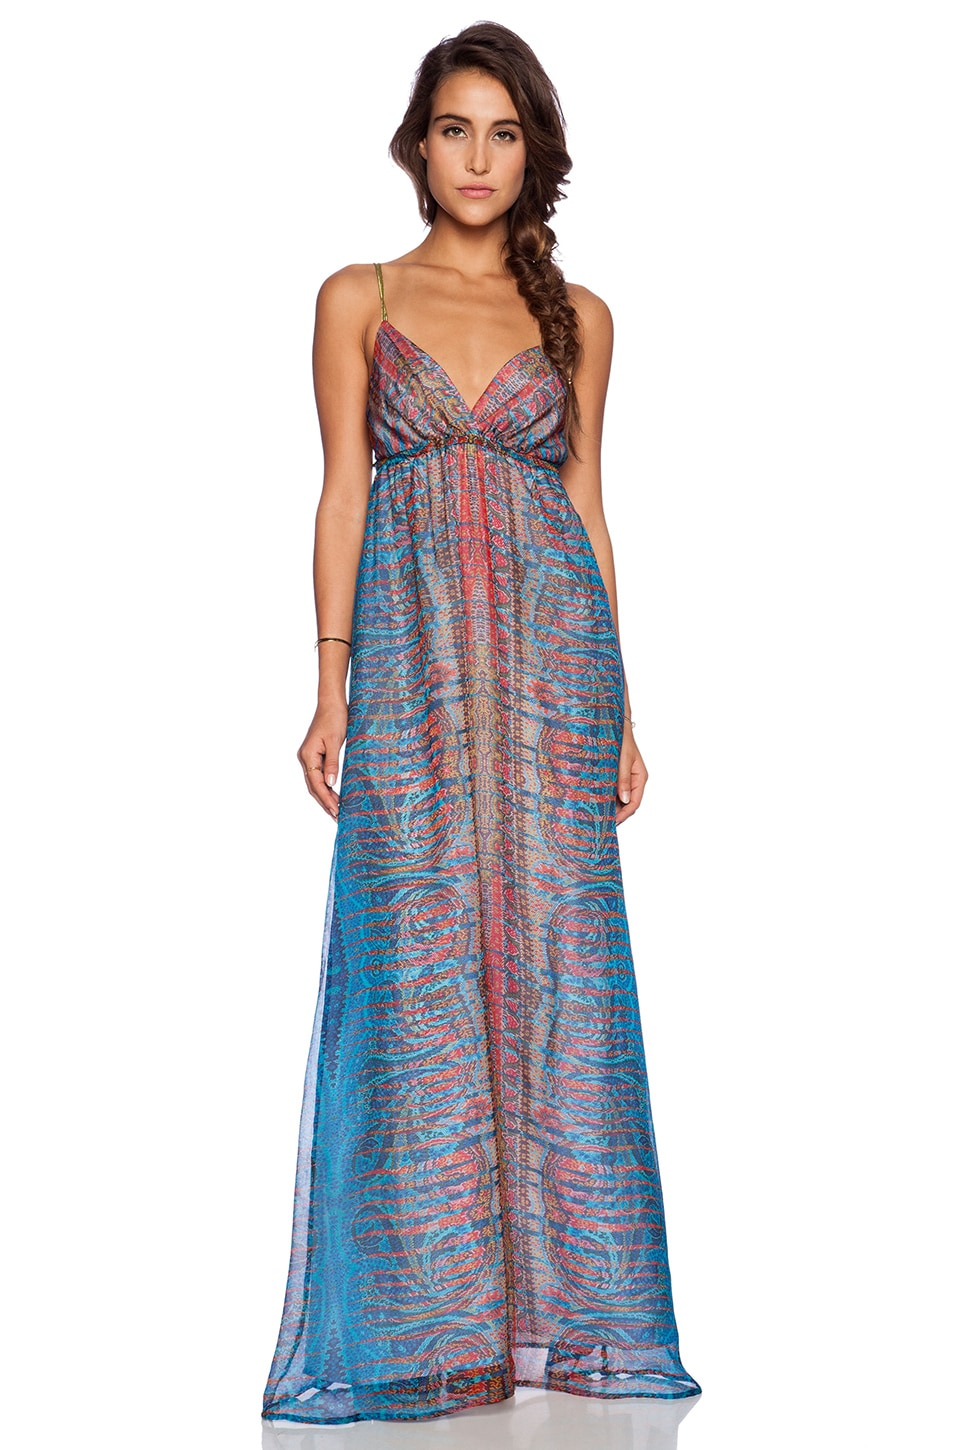 Gypsy 05 Printed Spaghetti Strap Maxi Dress in Prismatic Blue ...